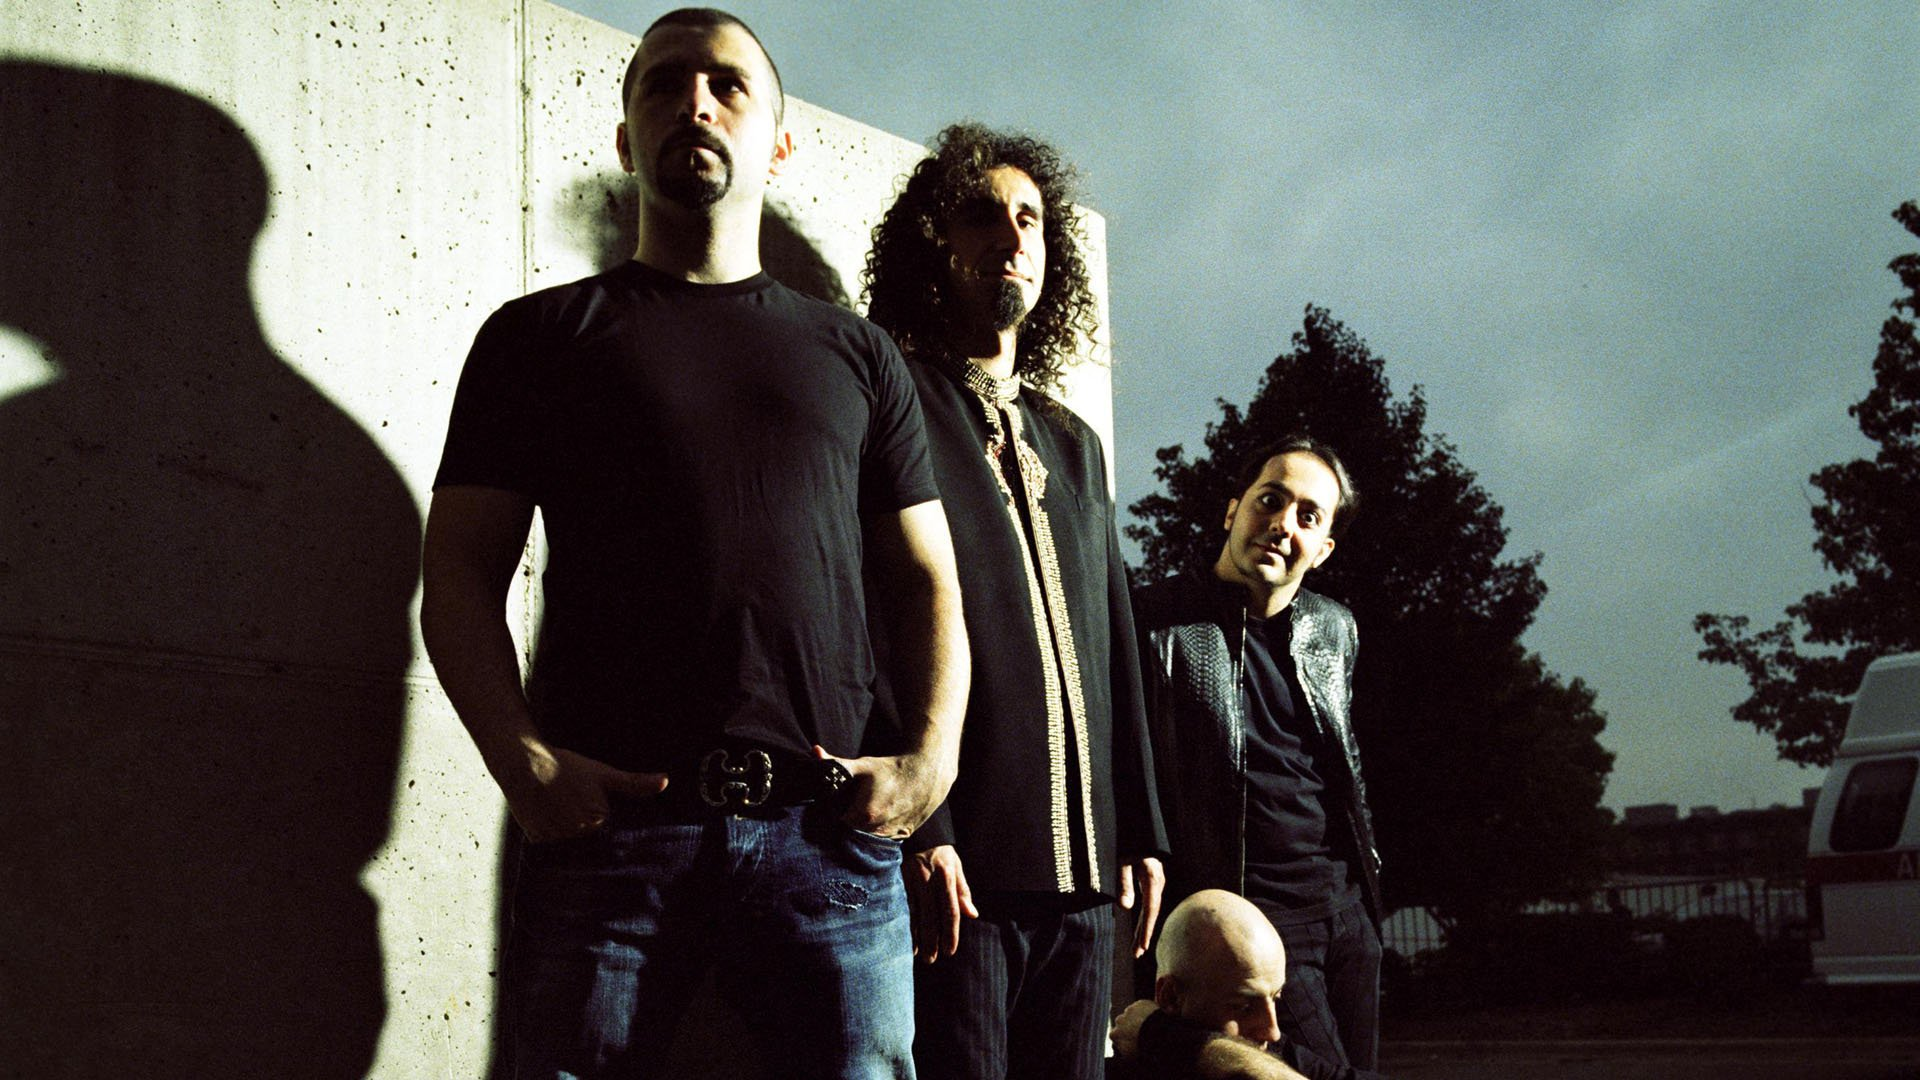 System Of A Down Hd Wallpaper Background Image 1920x1080 Id